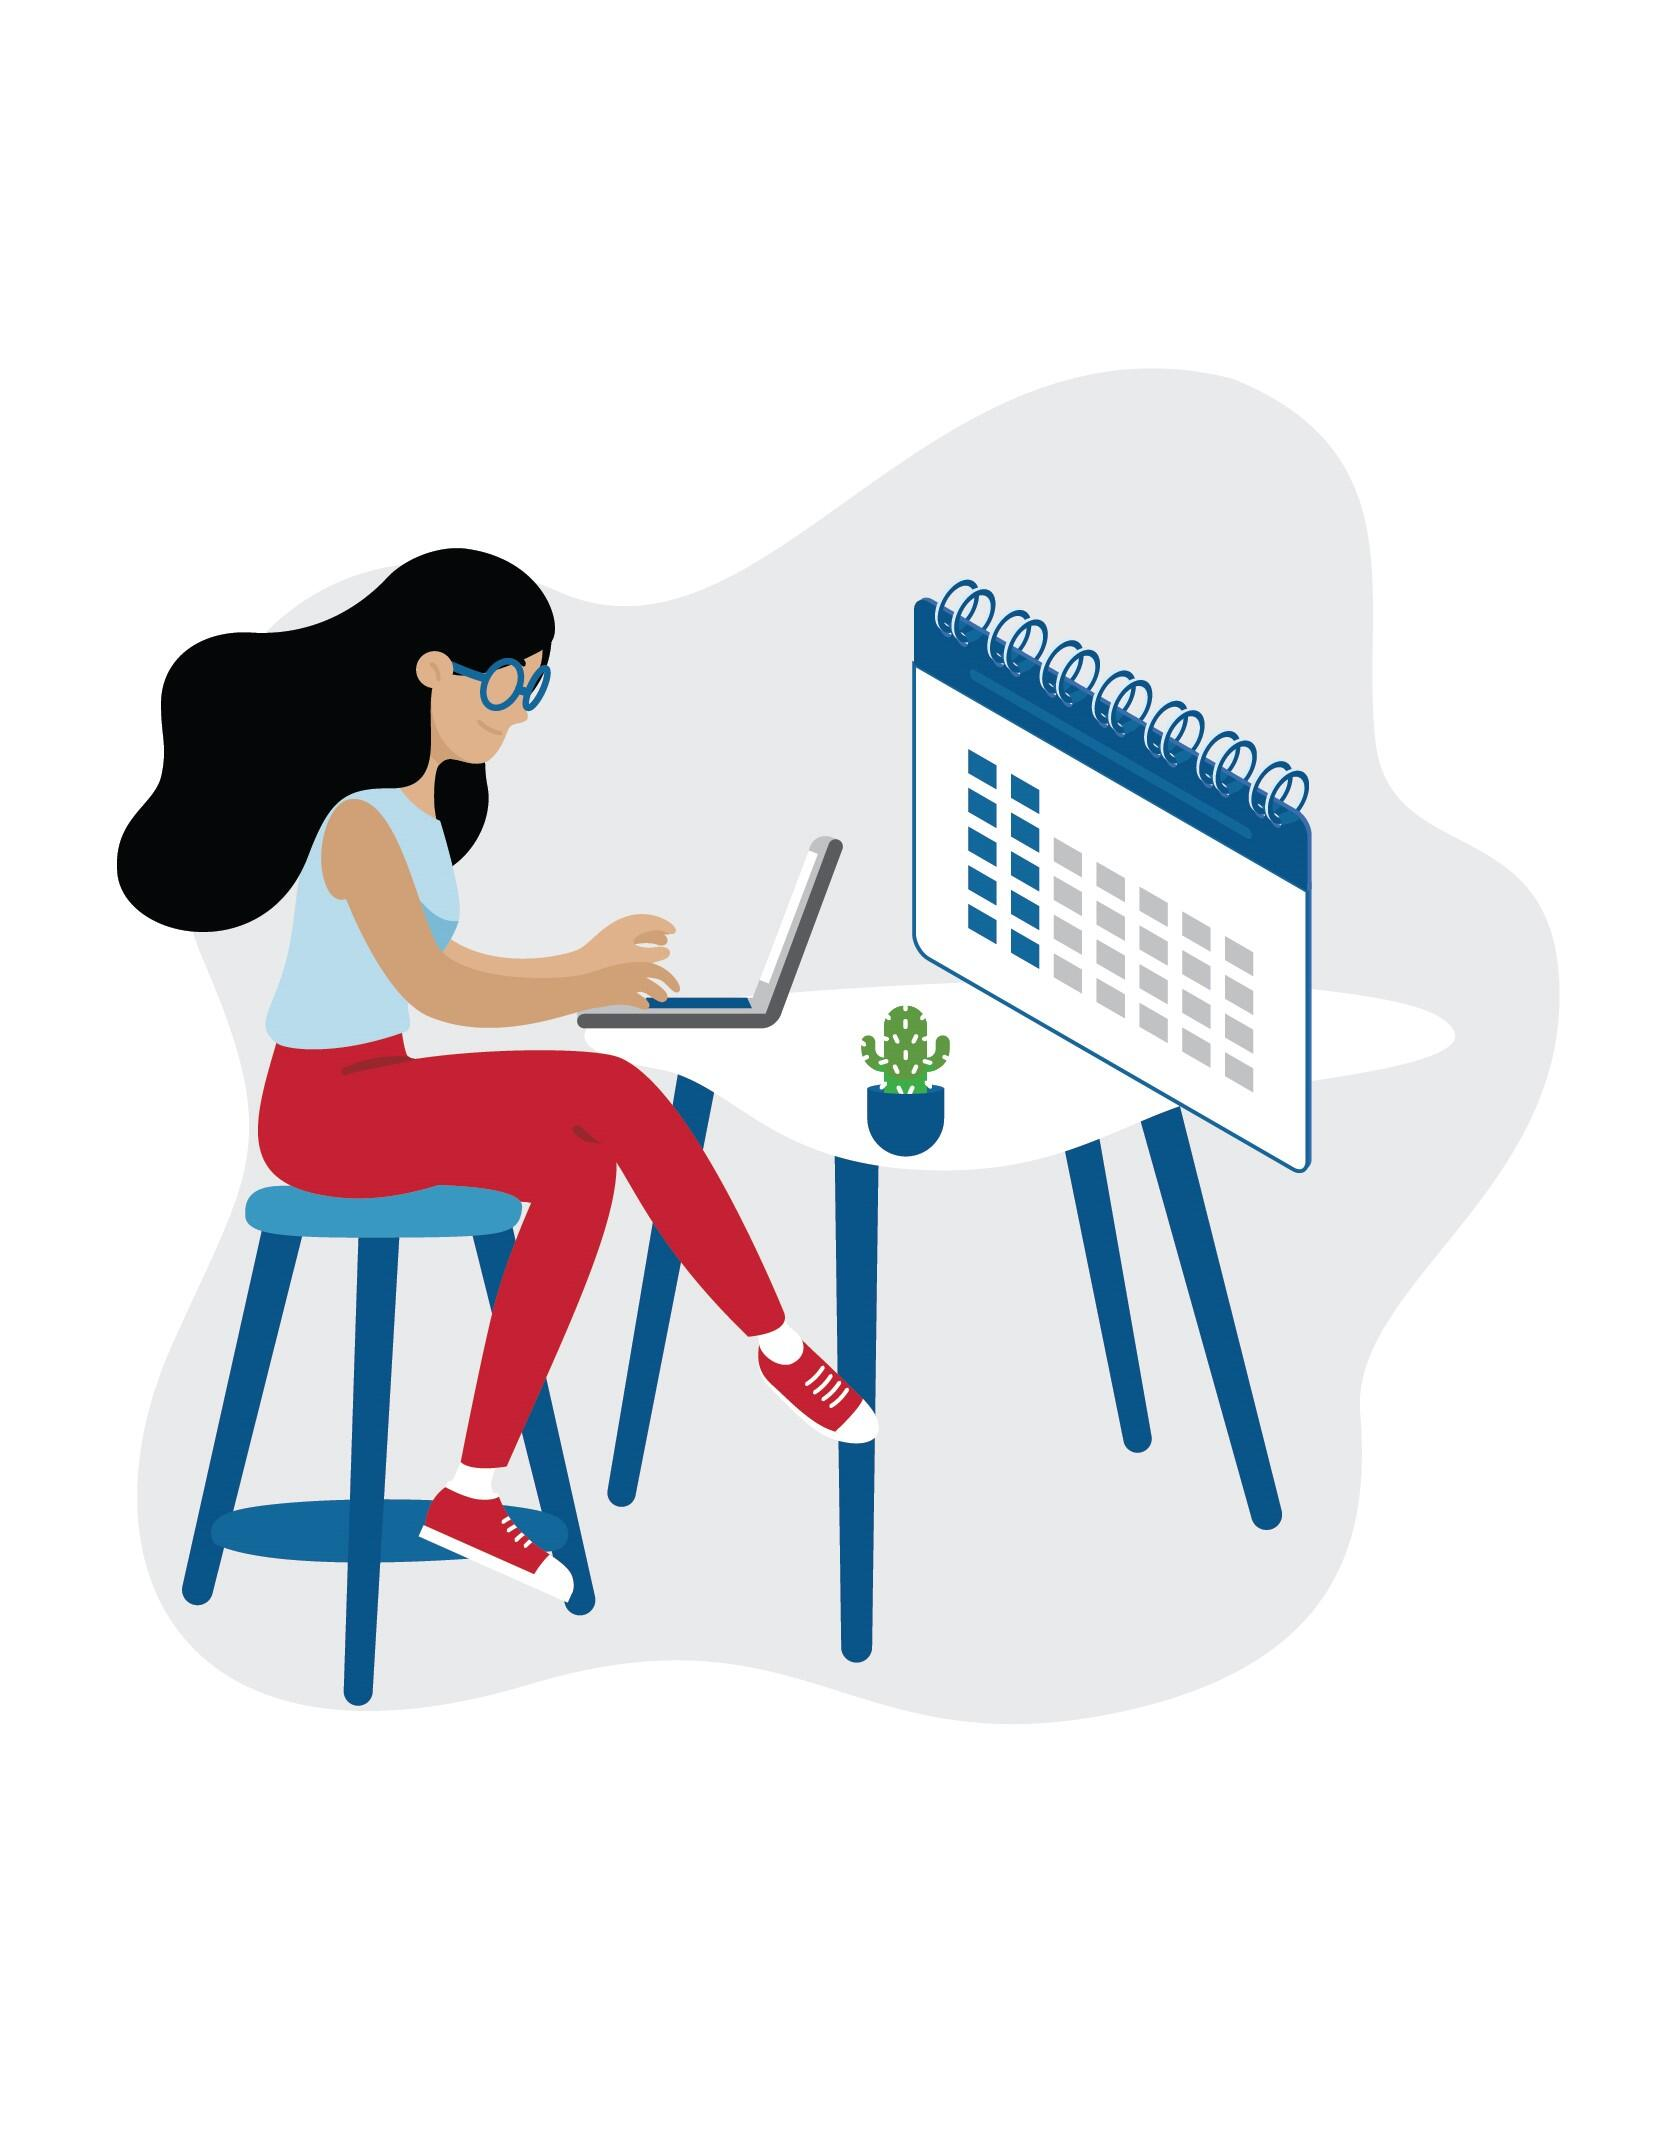 Graphic of a women sitting at a desk. The woman is typing on a computer.